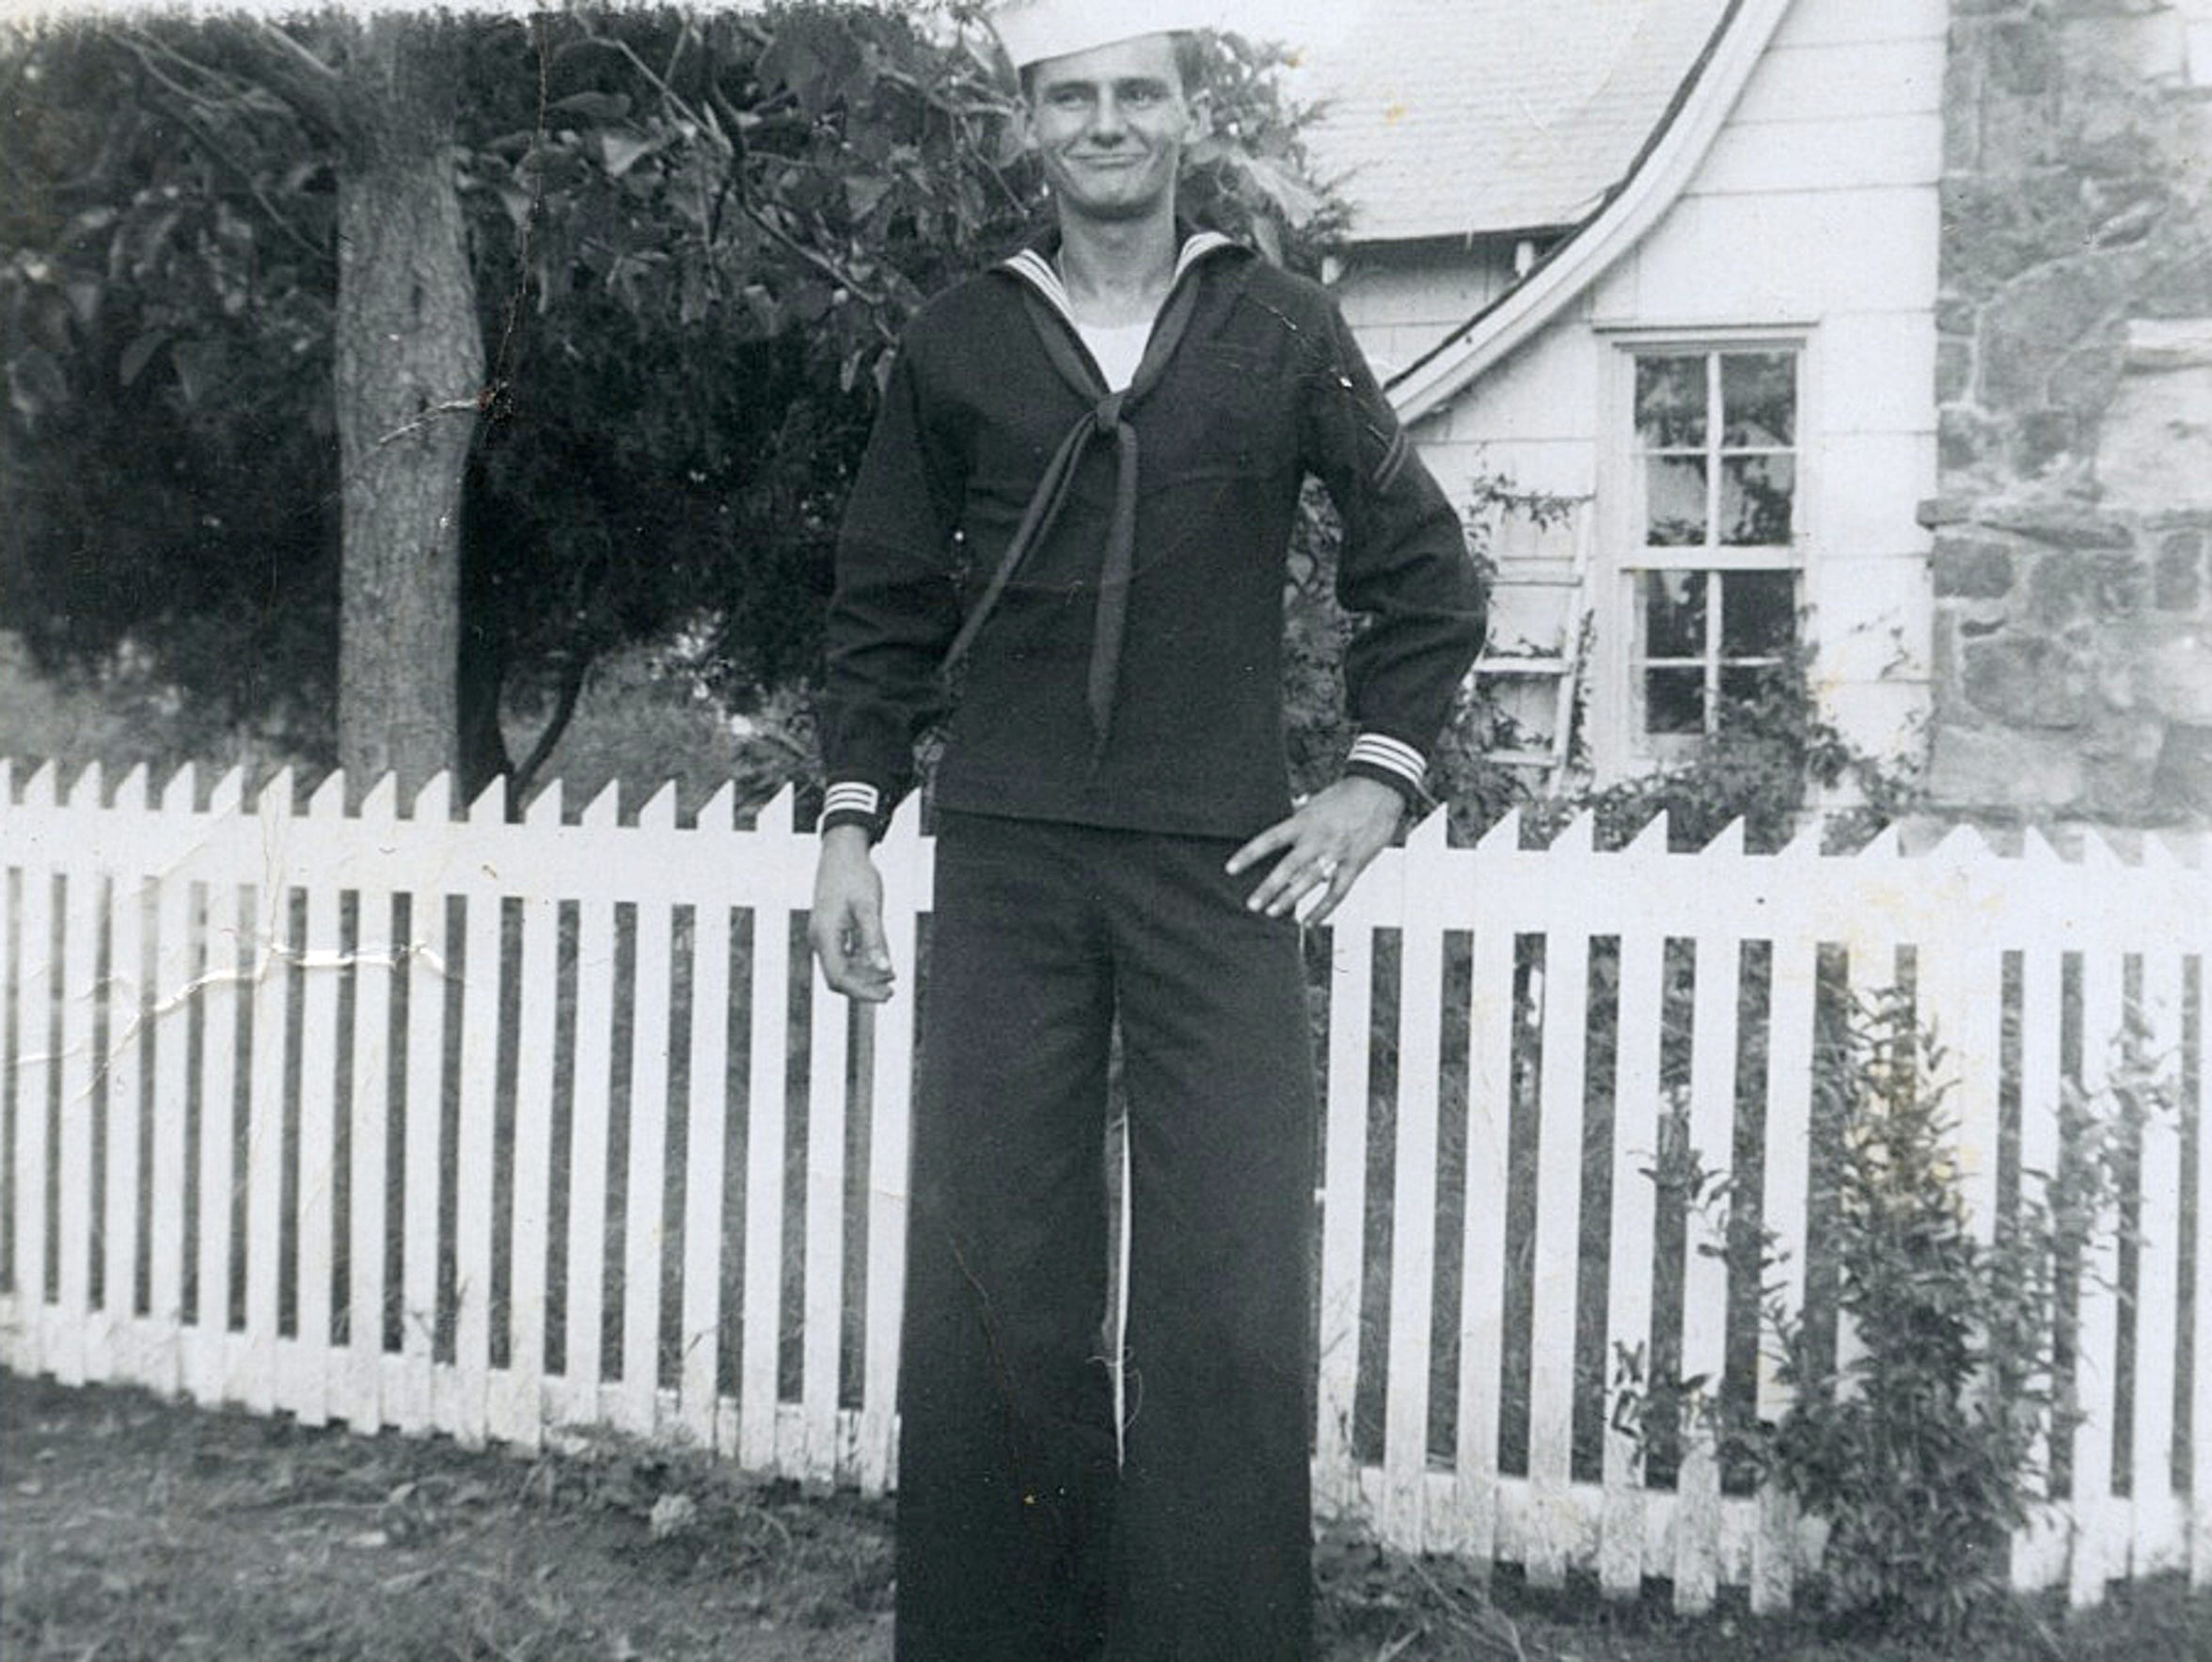 Bob Paillet poses in his U.S. Navy uniform during the